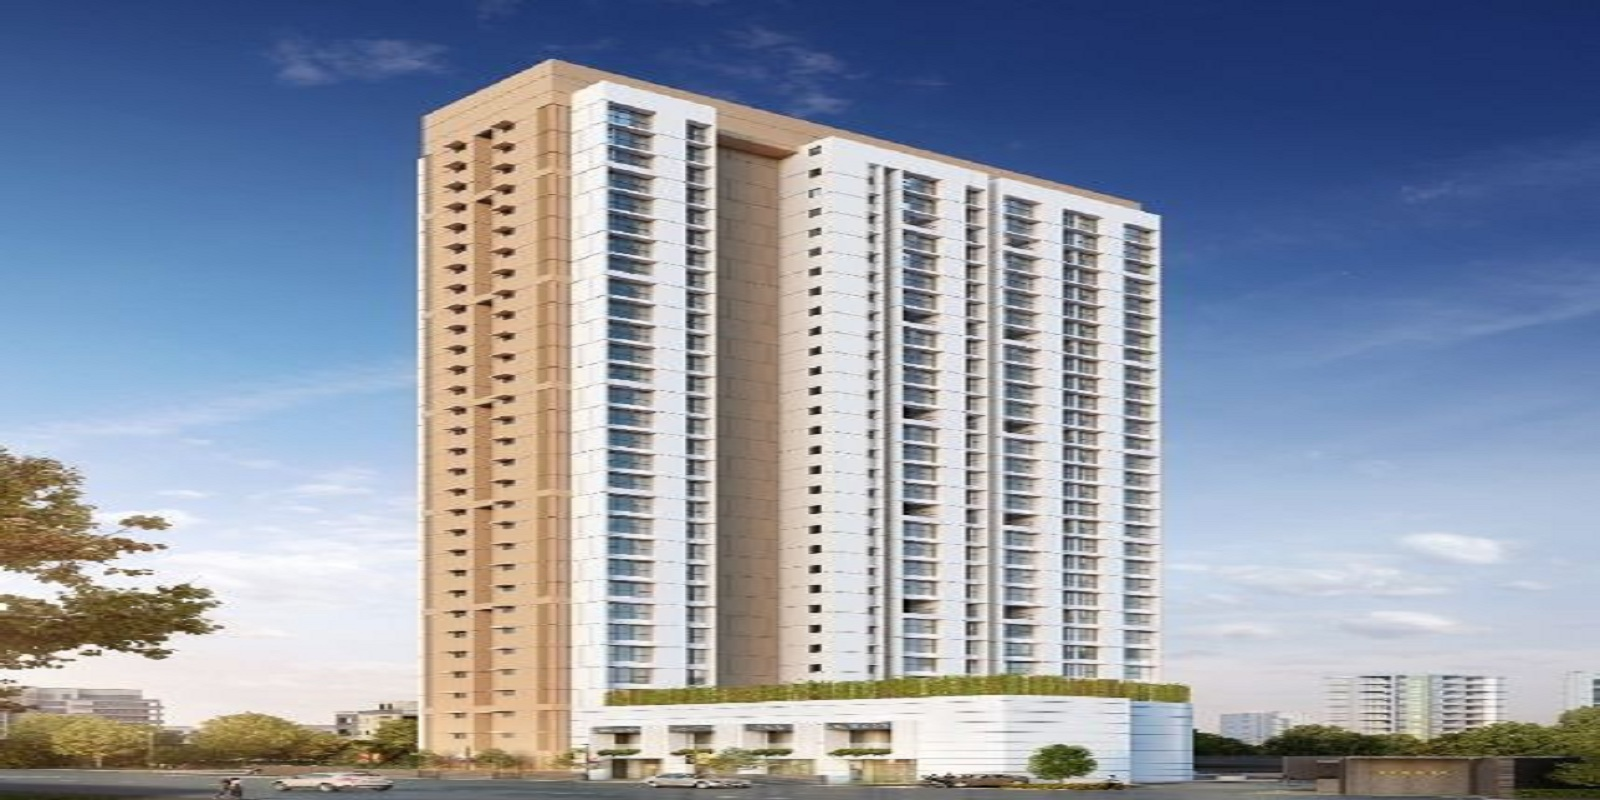 lodha majiwada tower 4 project project large image1